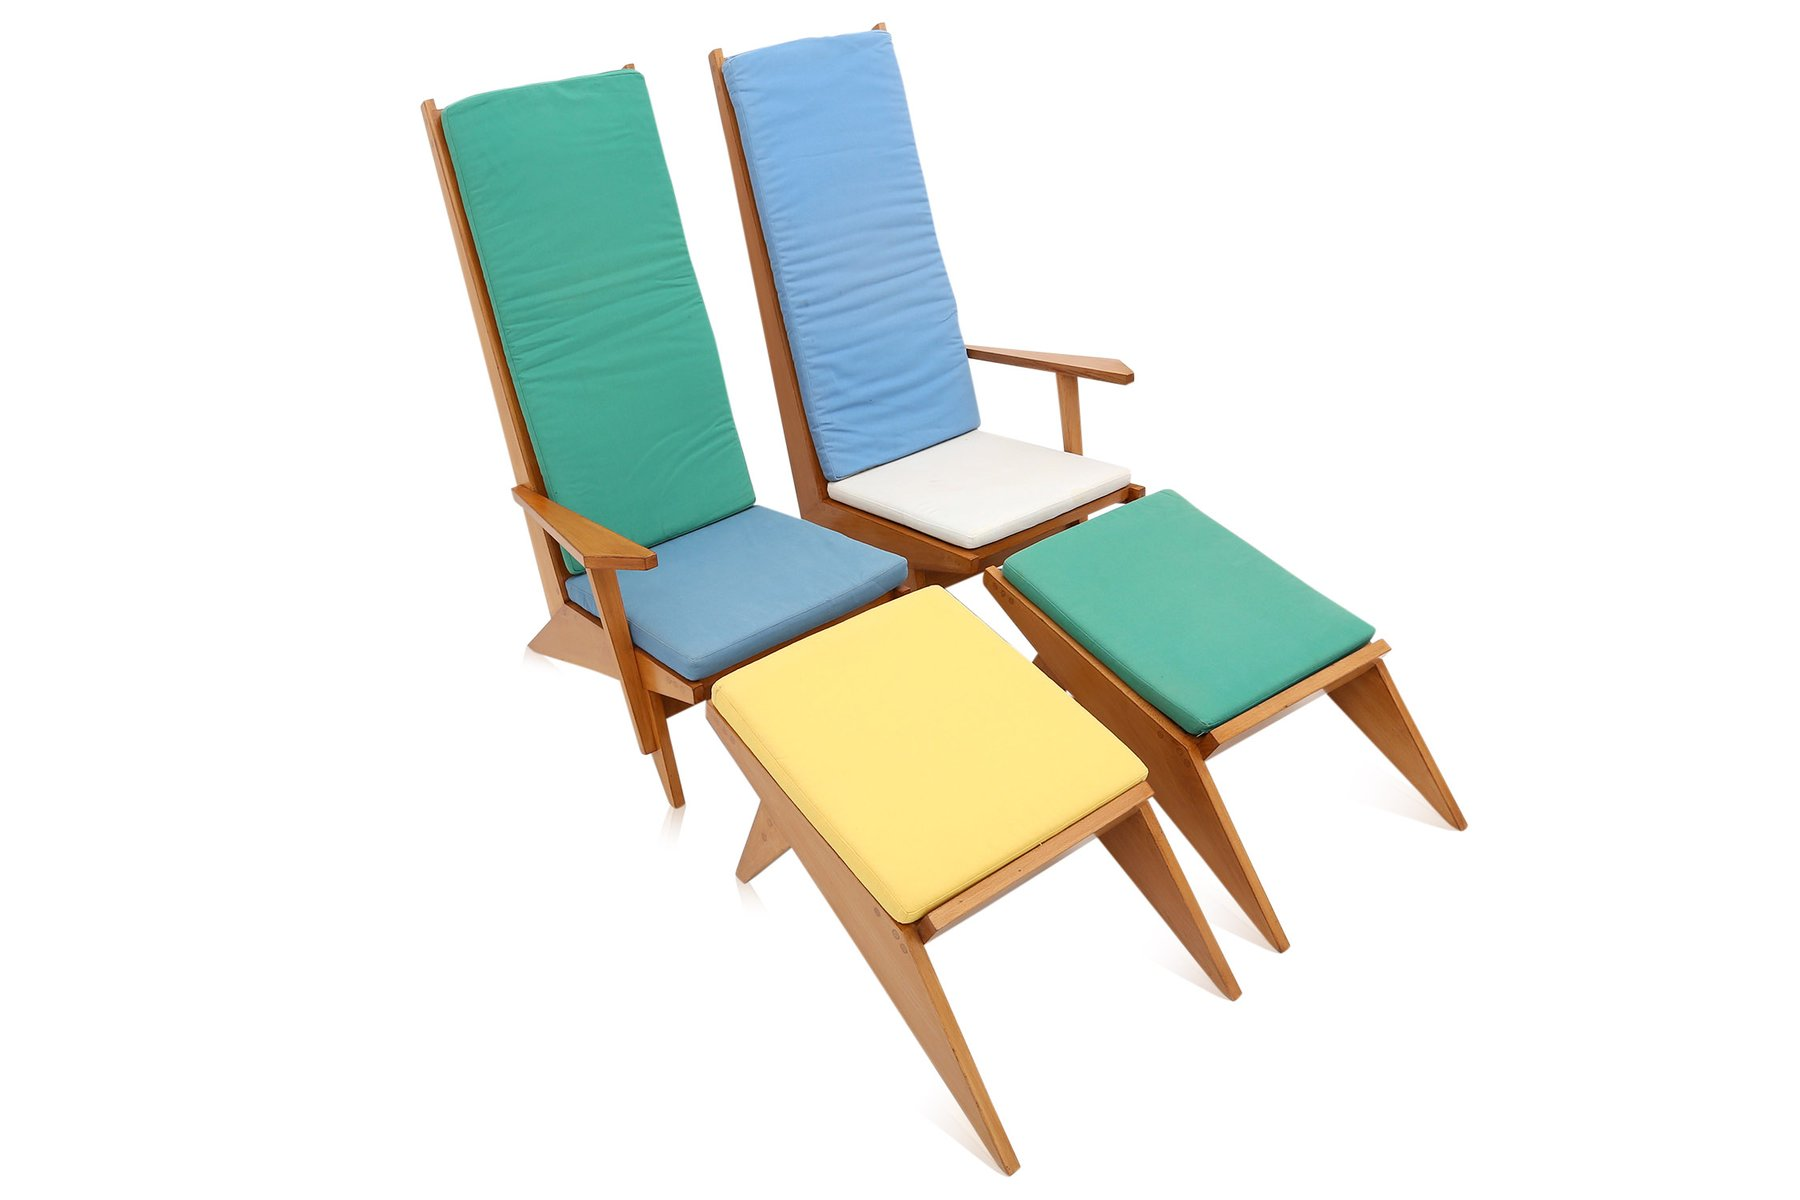 Commercial Pool Lounge Chairs Vintage Italian Swimming Pool Lounge Chairs 1970s For